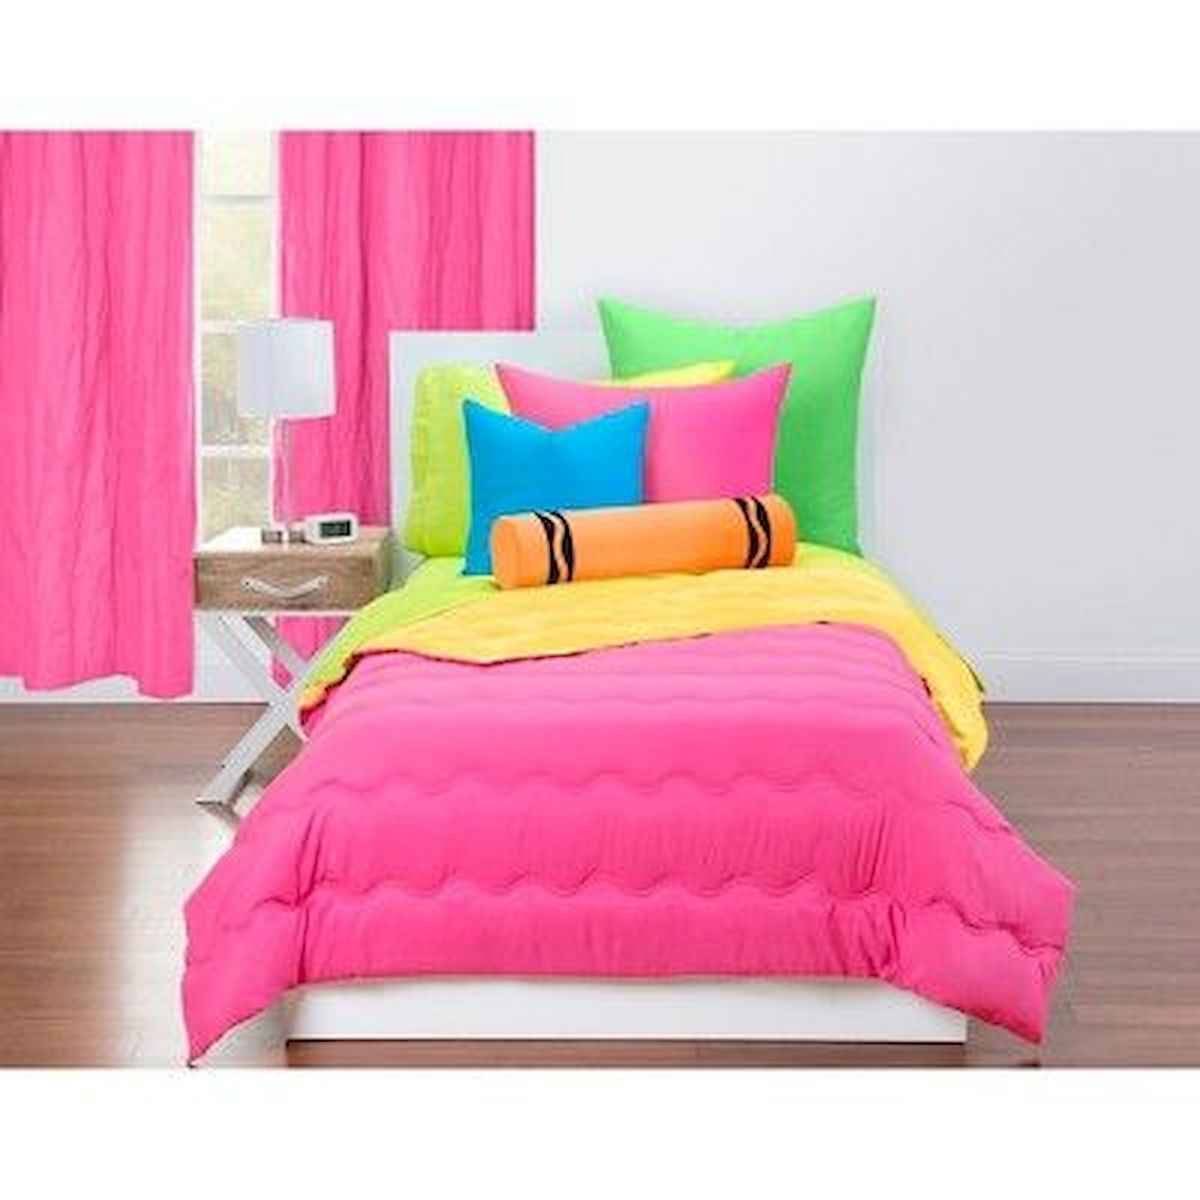 70+ Amazing Colorful Bedroom Decor Ideas And Remodel for Summer Project (20)